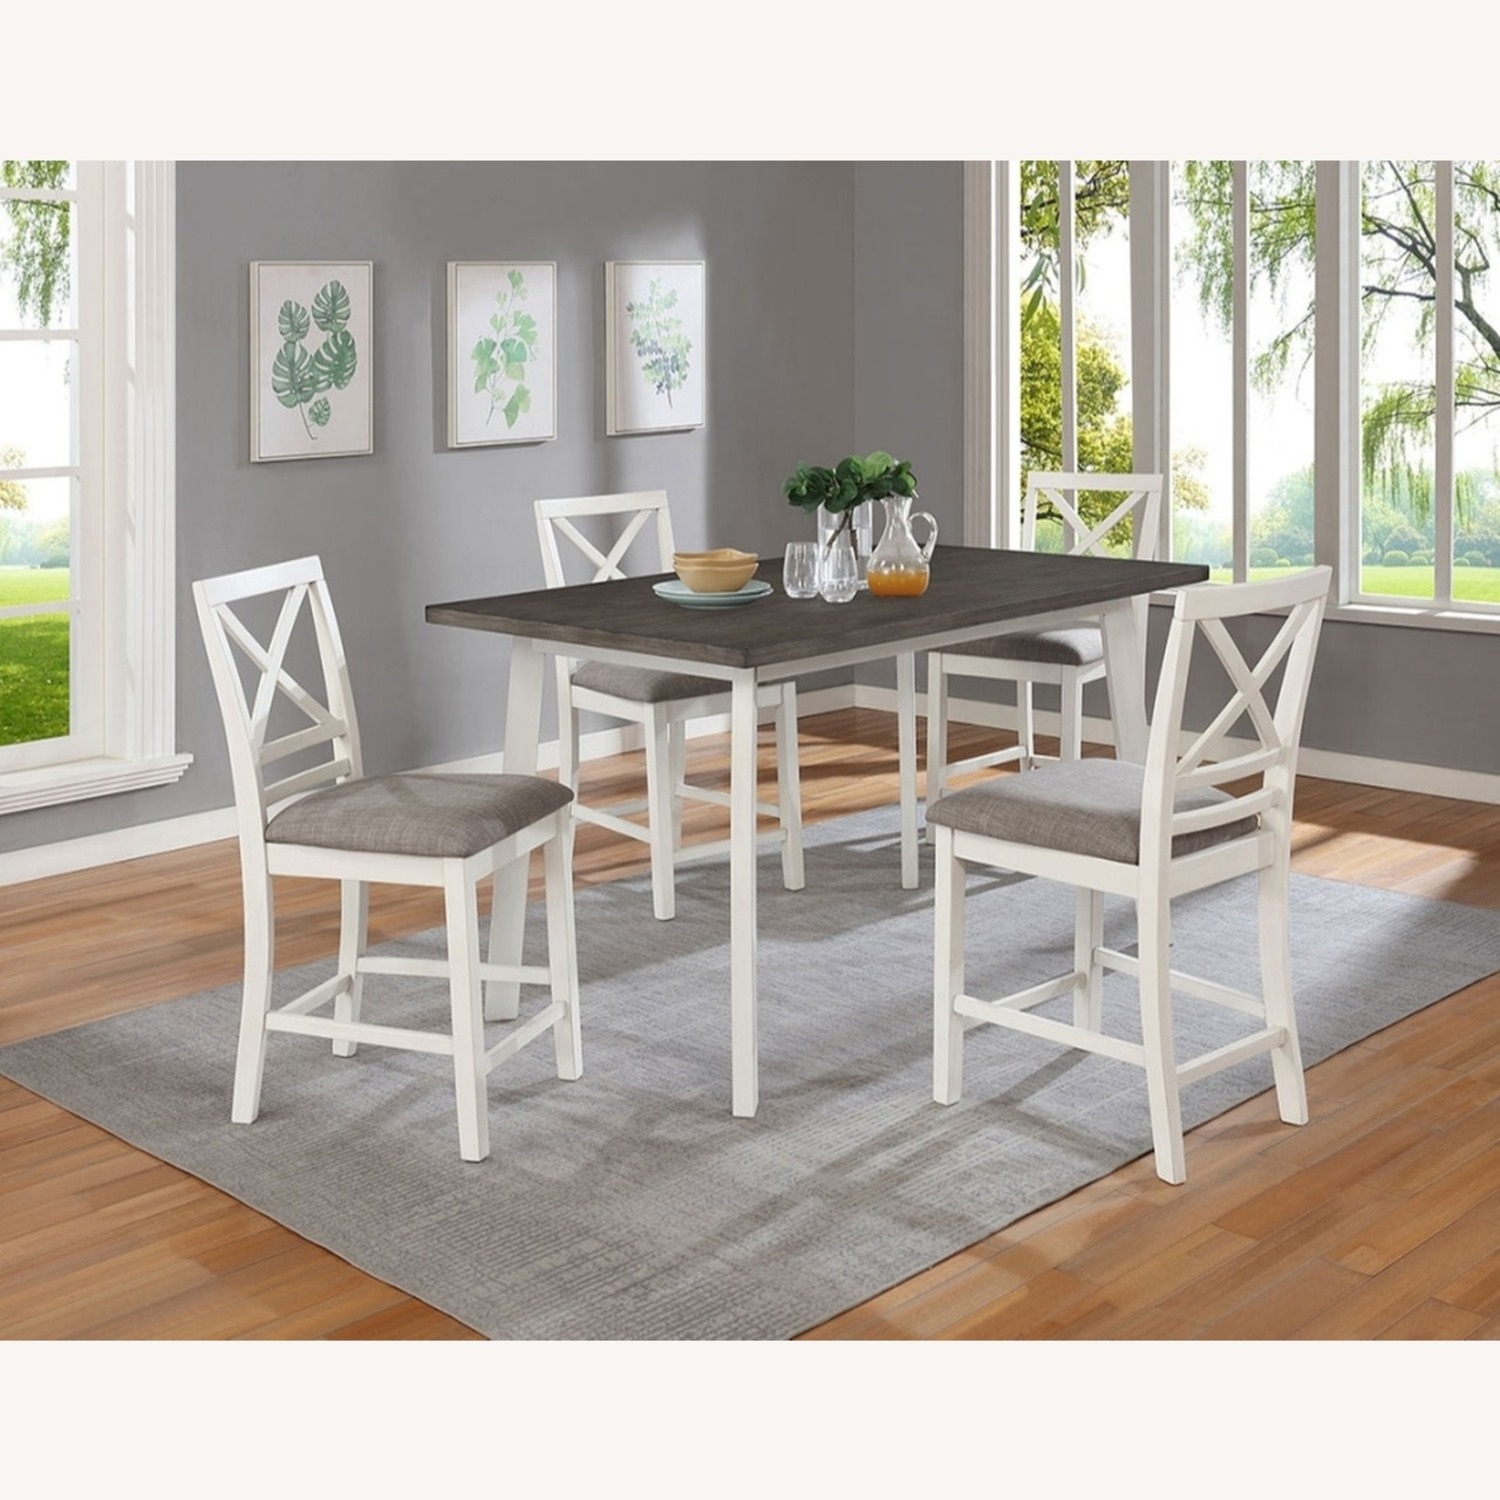 Modern 5-Piece Dining Set In Dark Truffle Finish - image-4